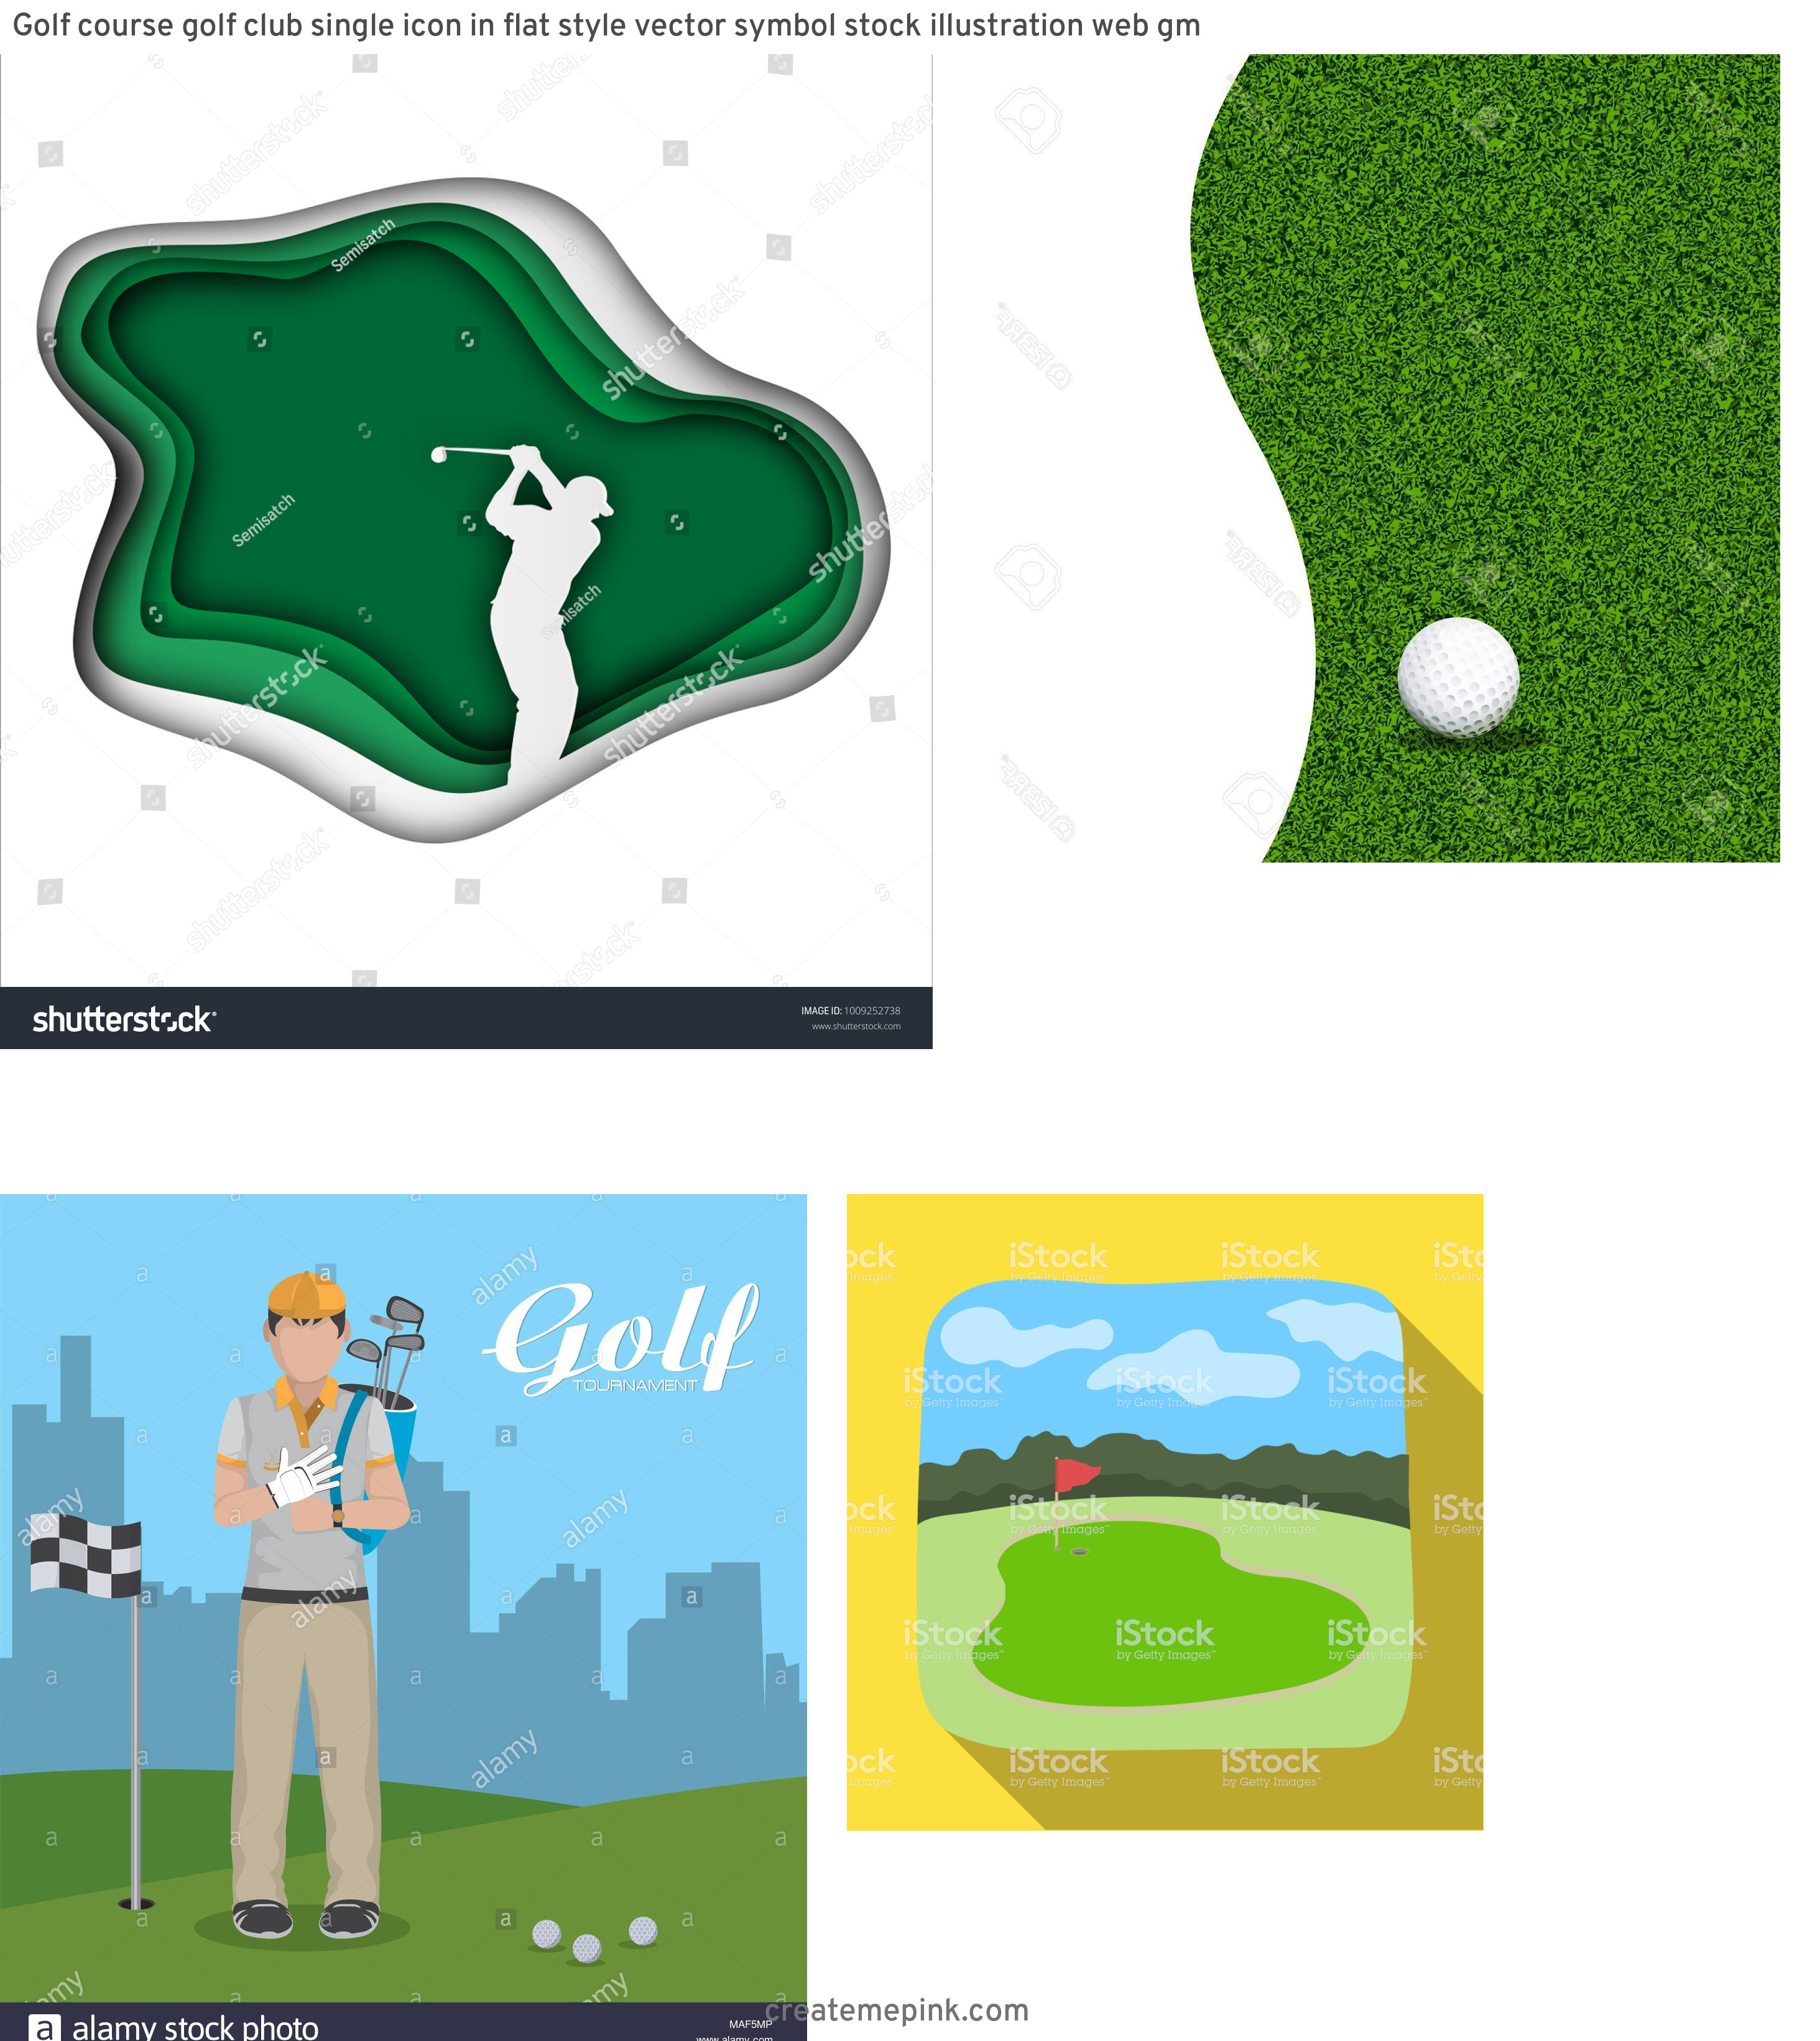 Golf Course Vector Art: Golf Course Golf Club Single Icon In Flat Style Vector Symbol Stock Illustration Web Gm